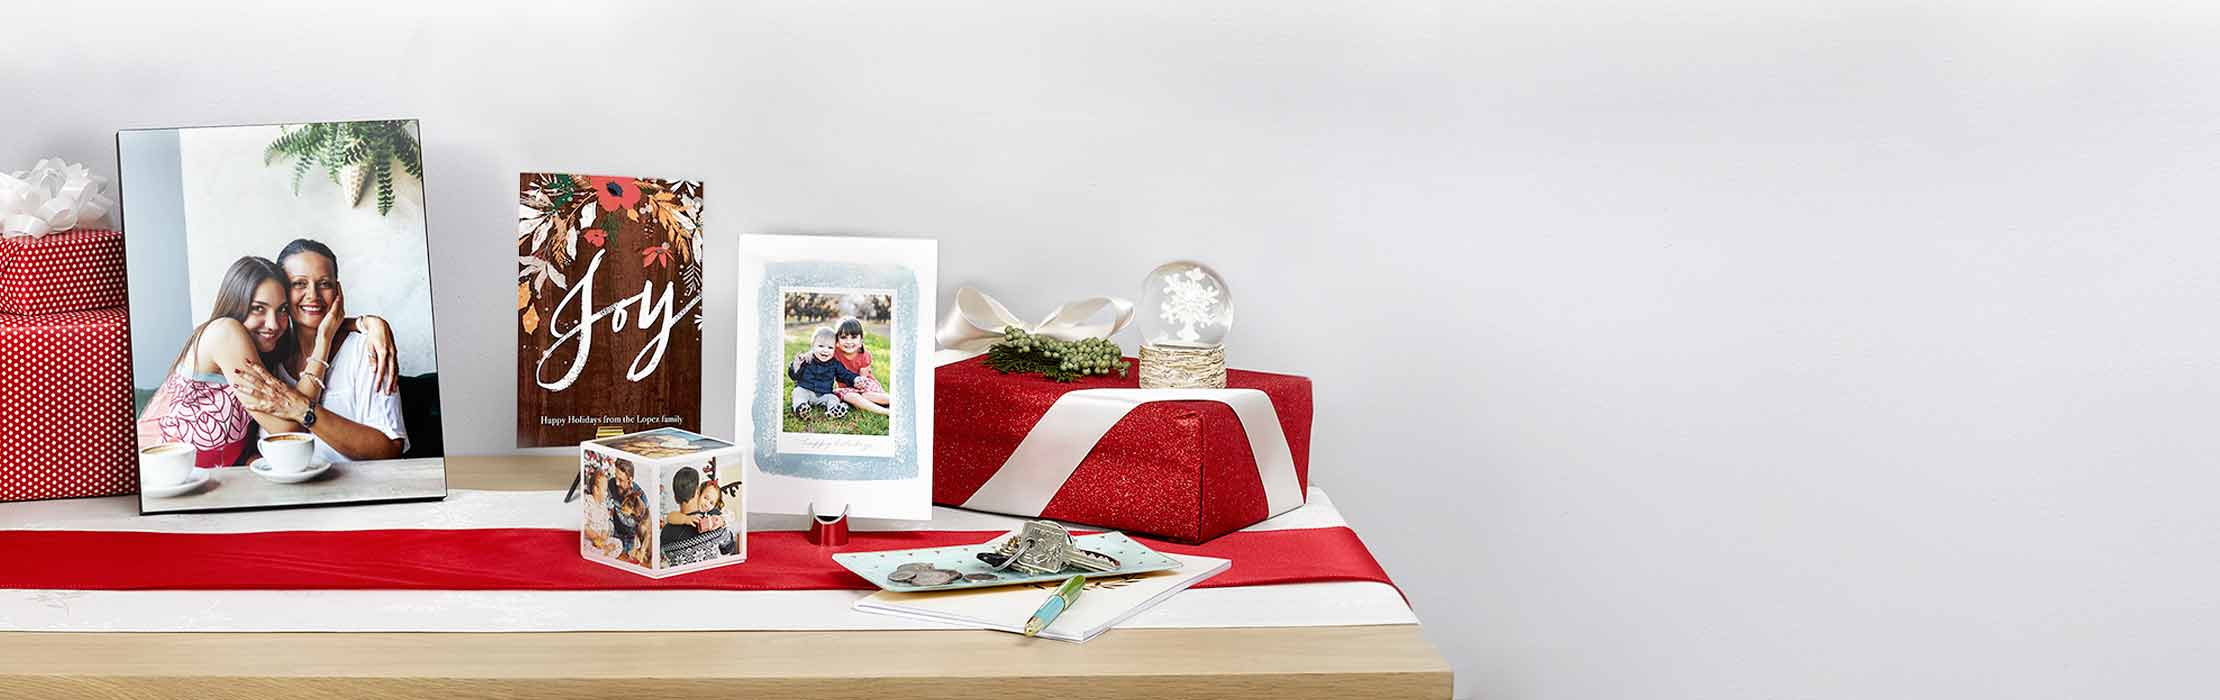 Order and Pick Up Photos Today - Same Day Pickup | Walgreens Photo